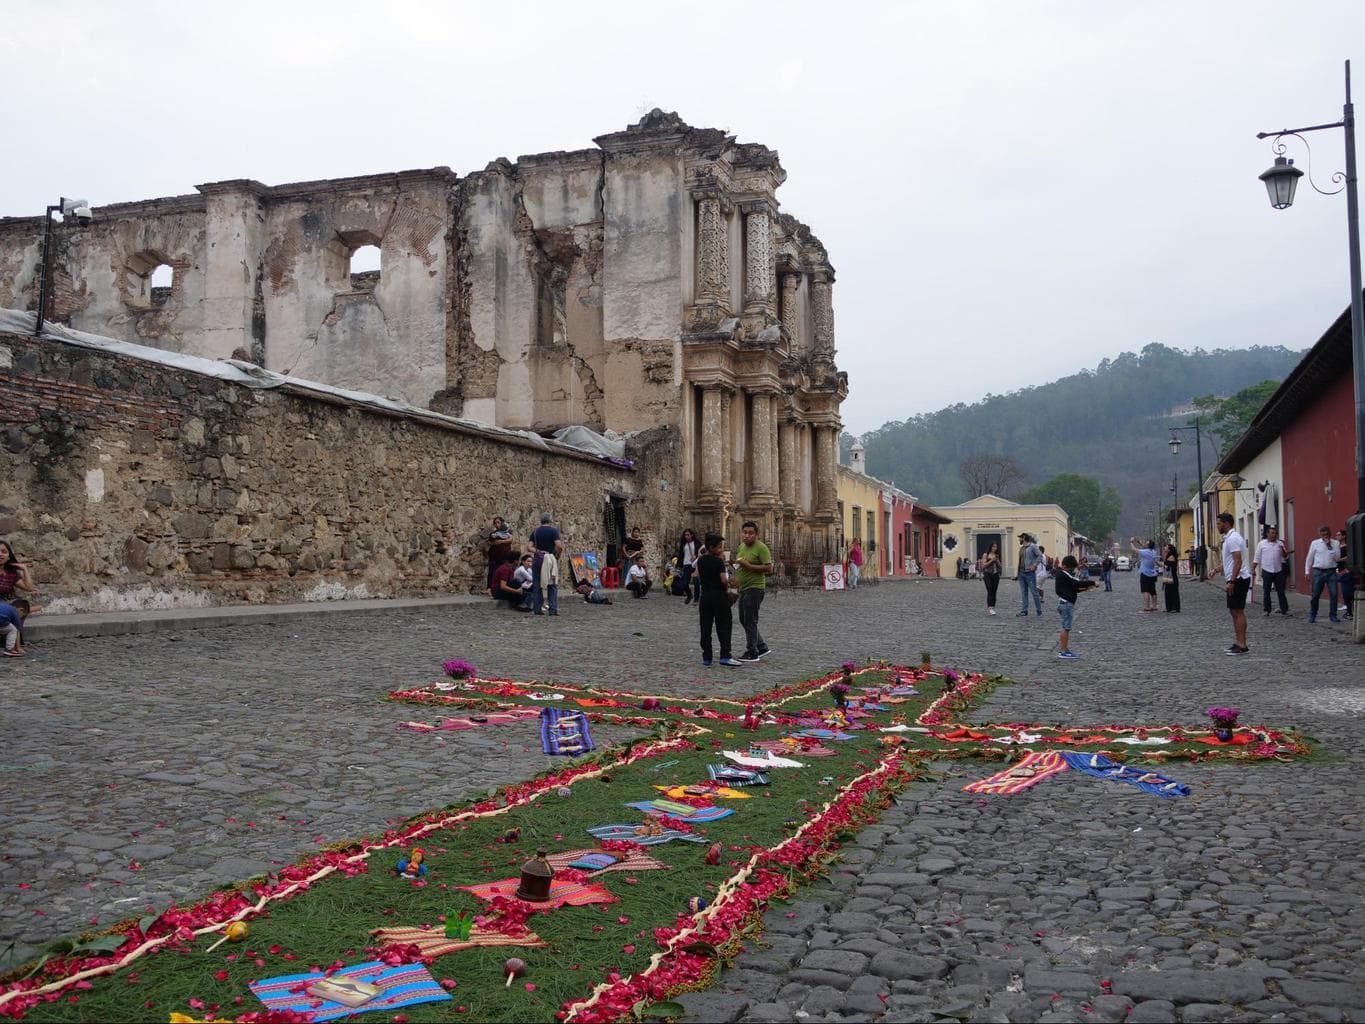 Antigua Guatemala translates to The Former Guatemala